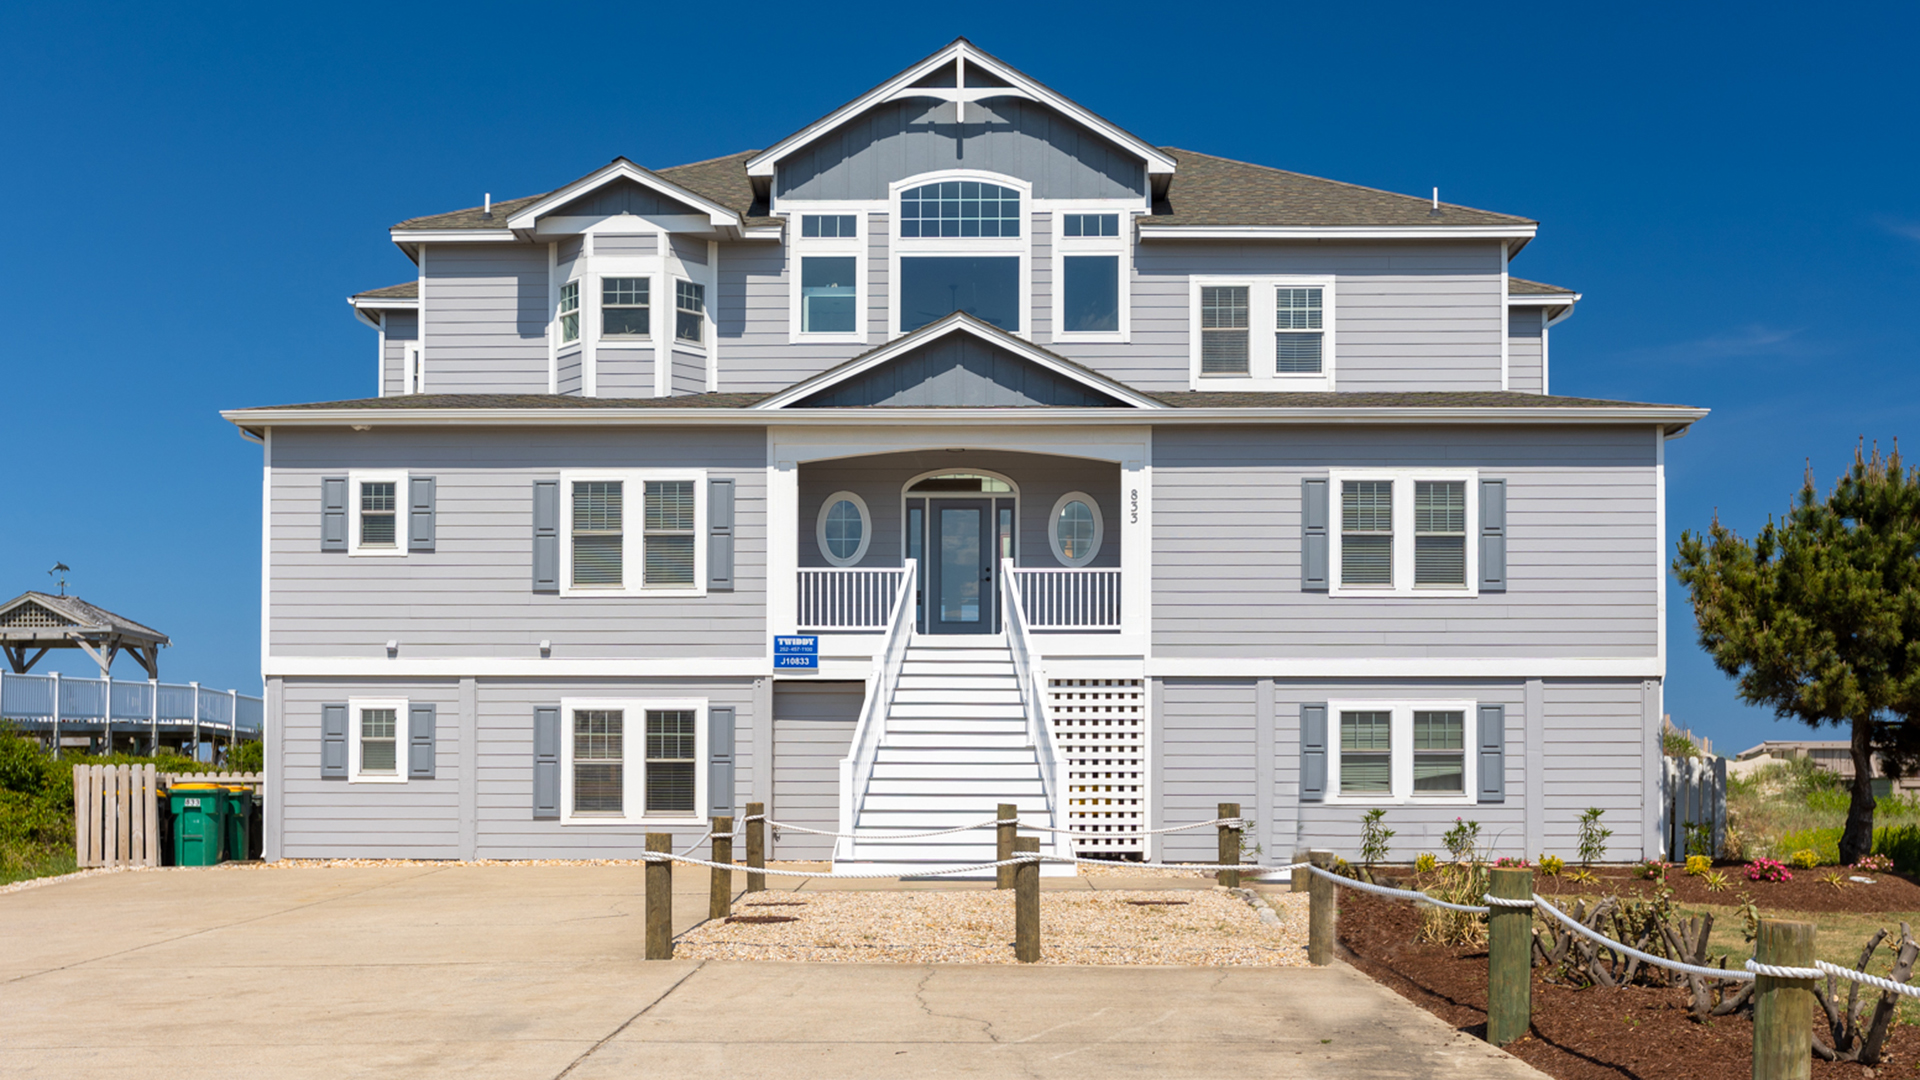 obx banks soundfront homes rentals vacation week per cottage outer